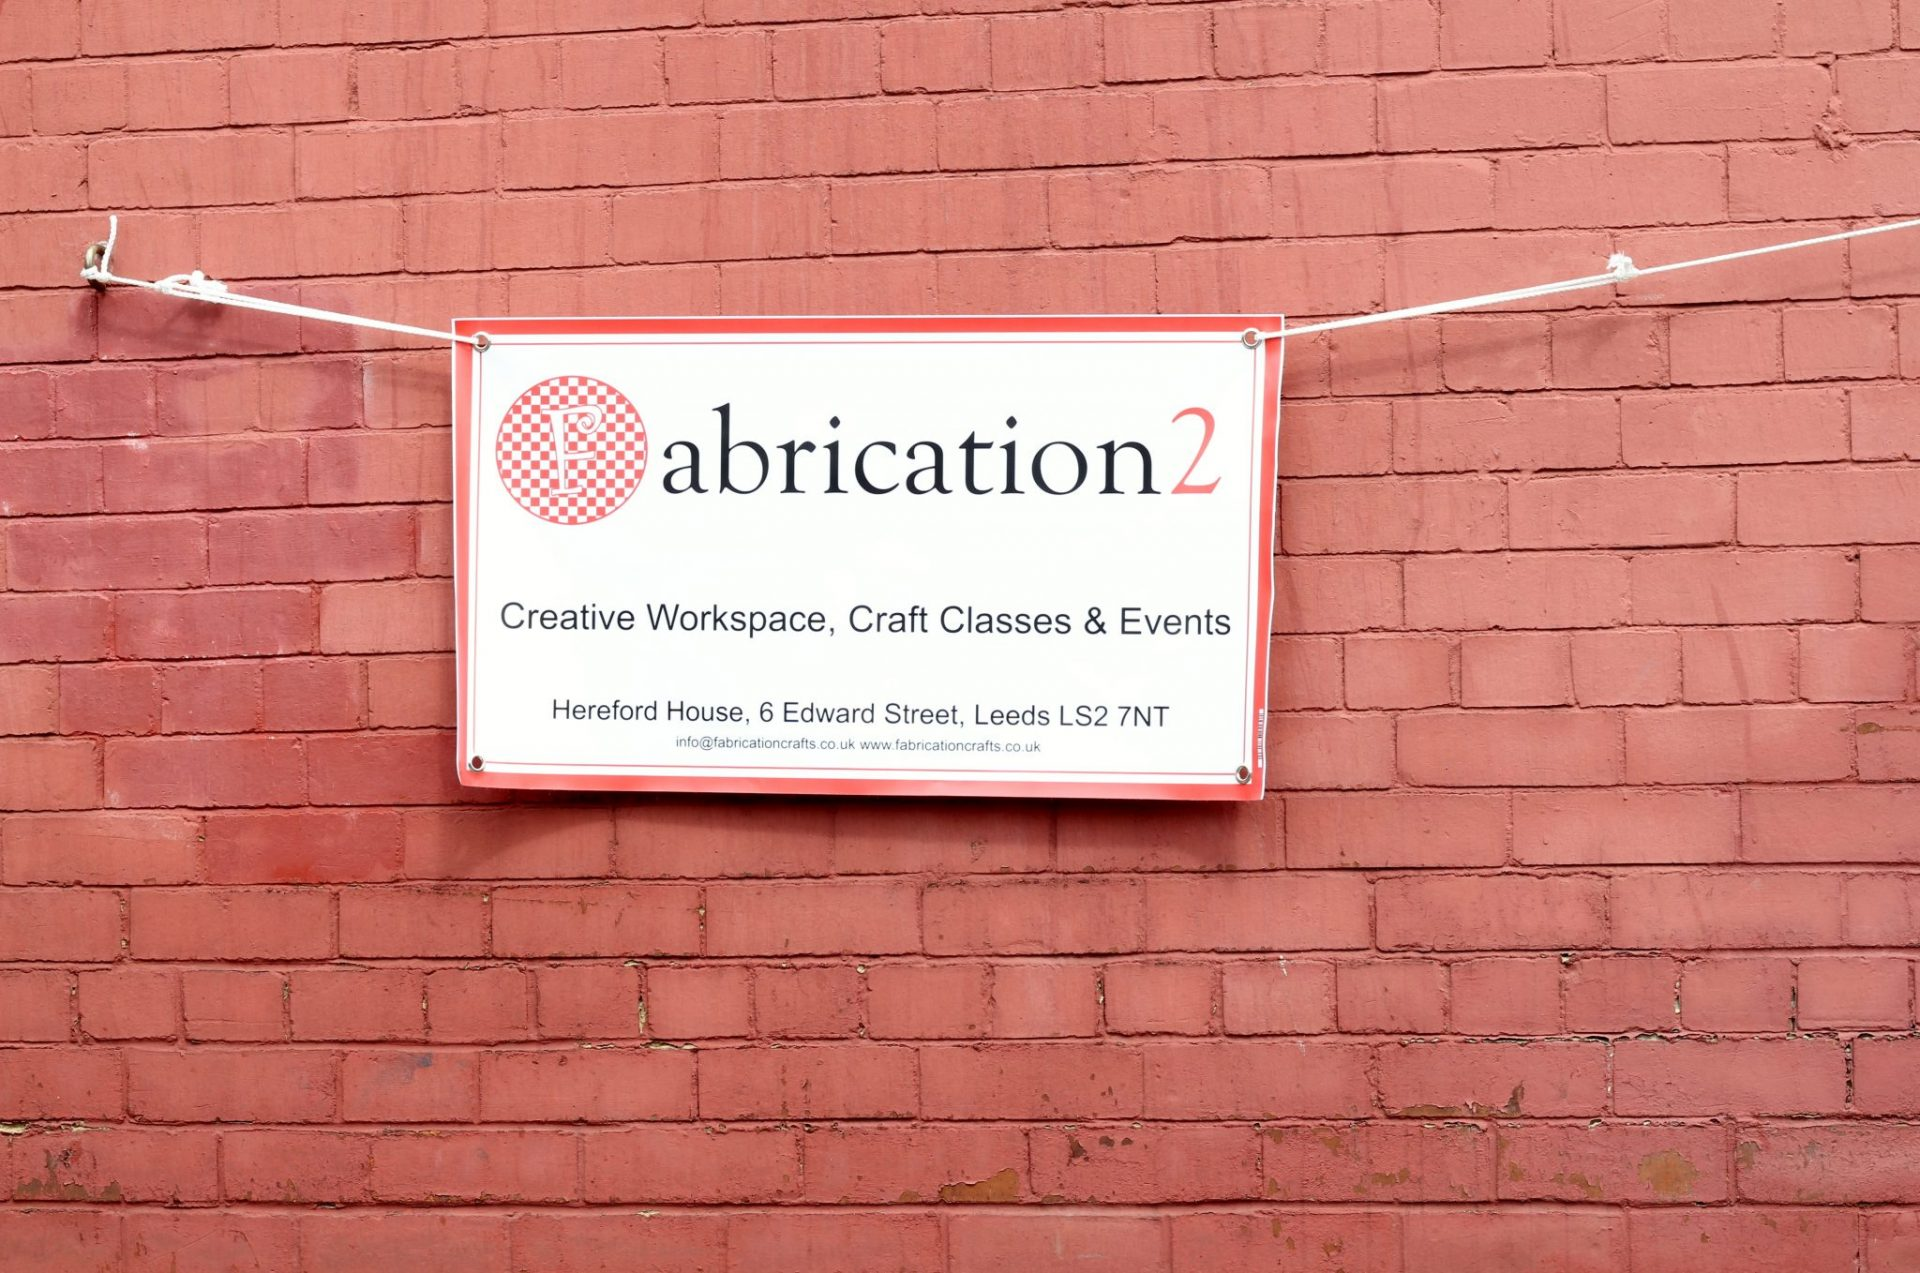 Fabrication2 is our new creative workspace, with rentable facilities for sewing, costume making and jewellery. Also where we hold our classes and courses